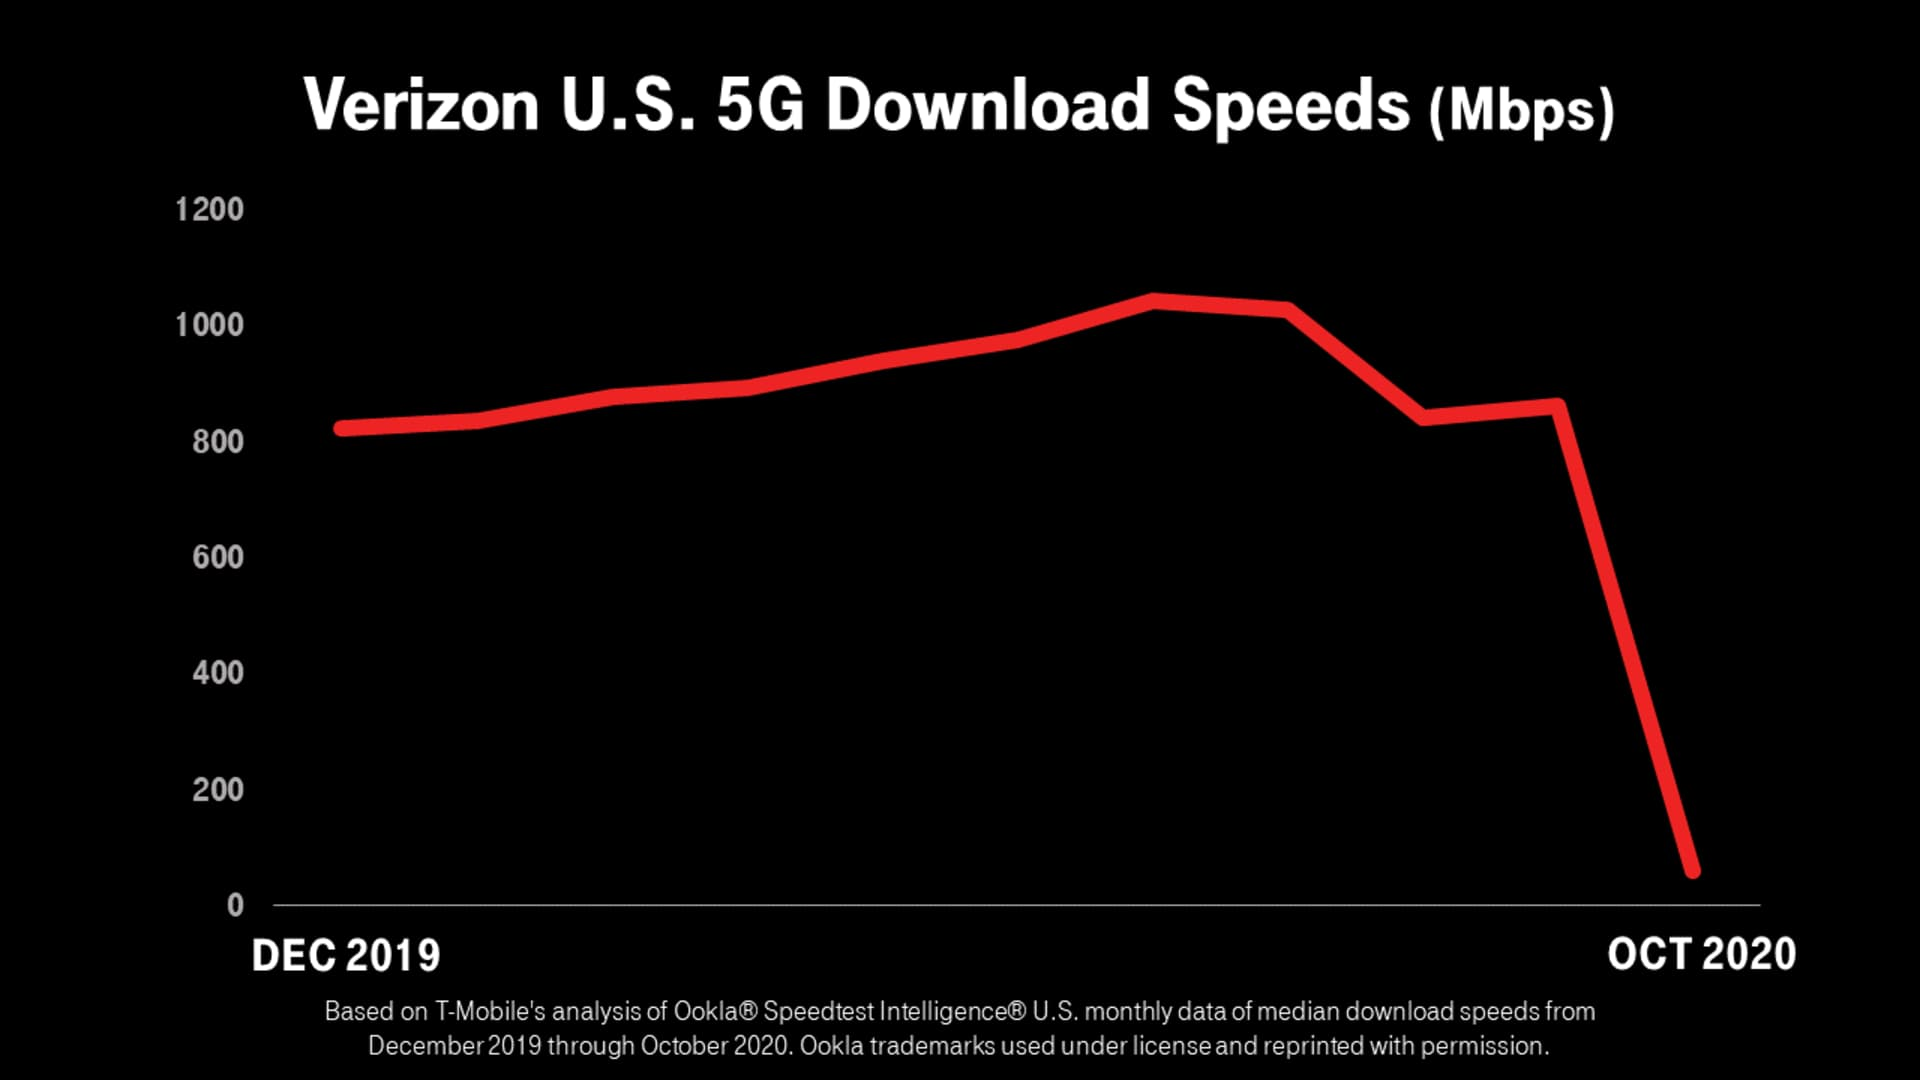 Verizon US 5G Download Speeds from T Mobile